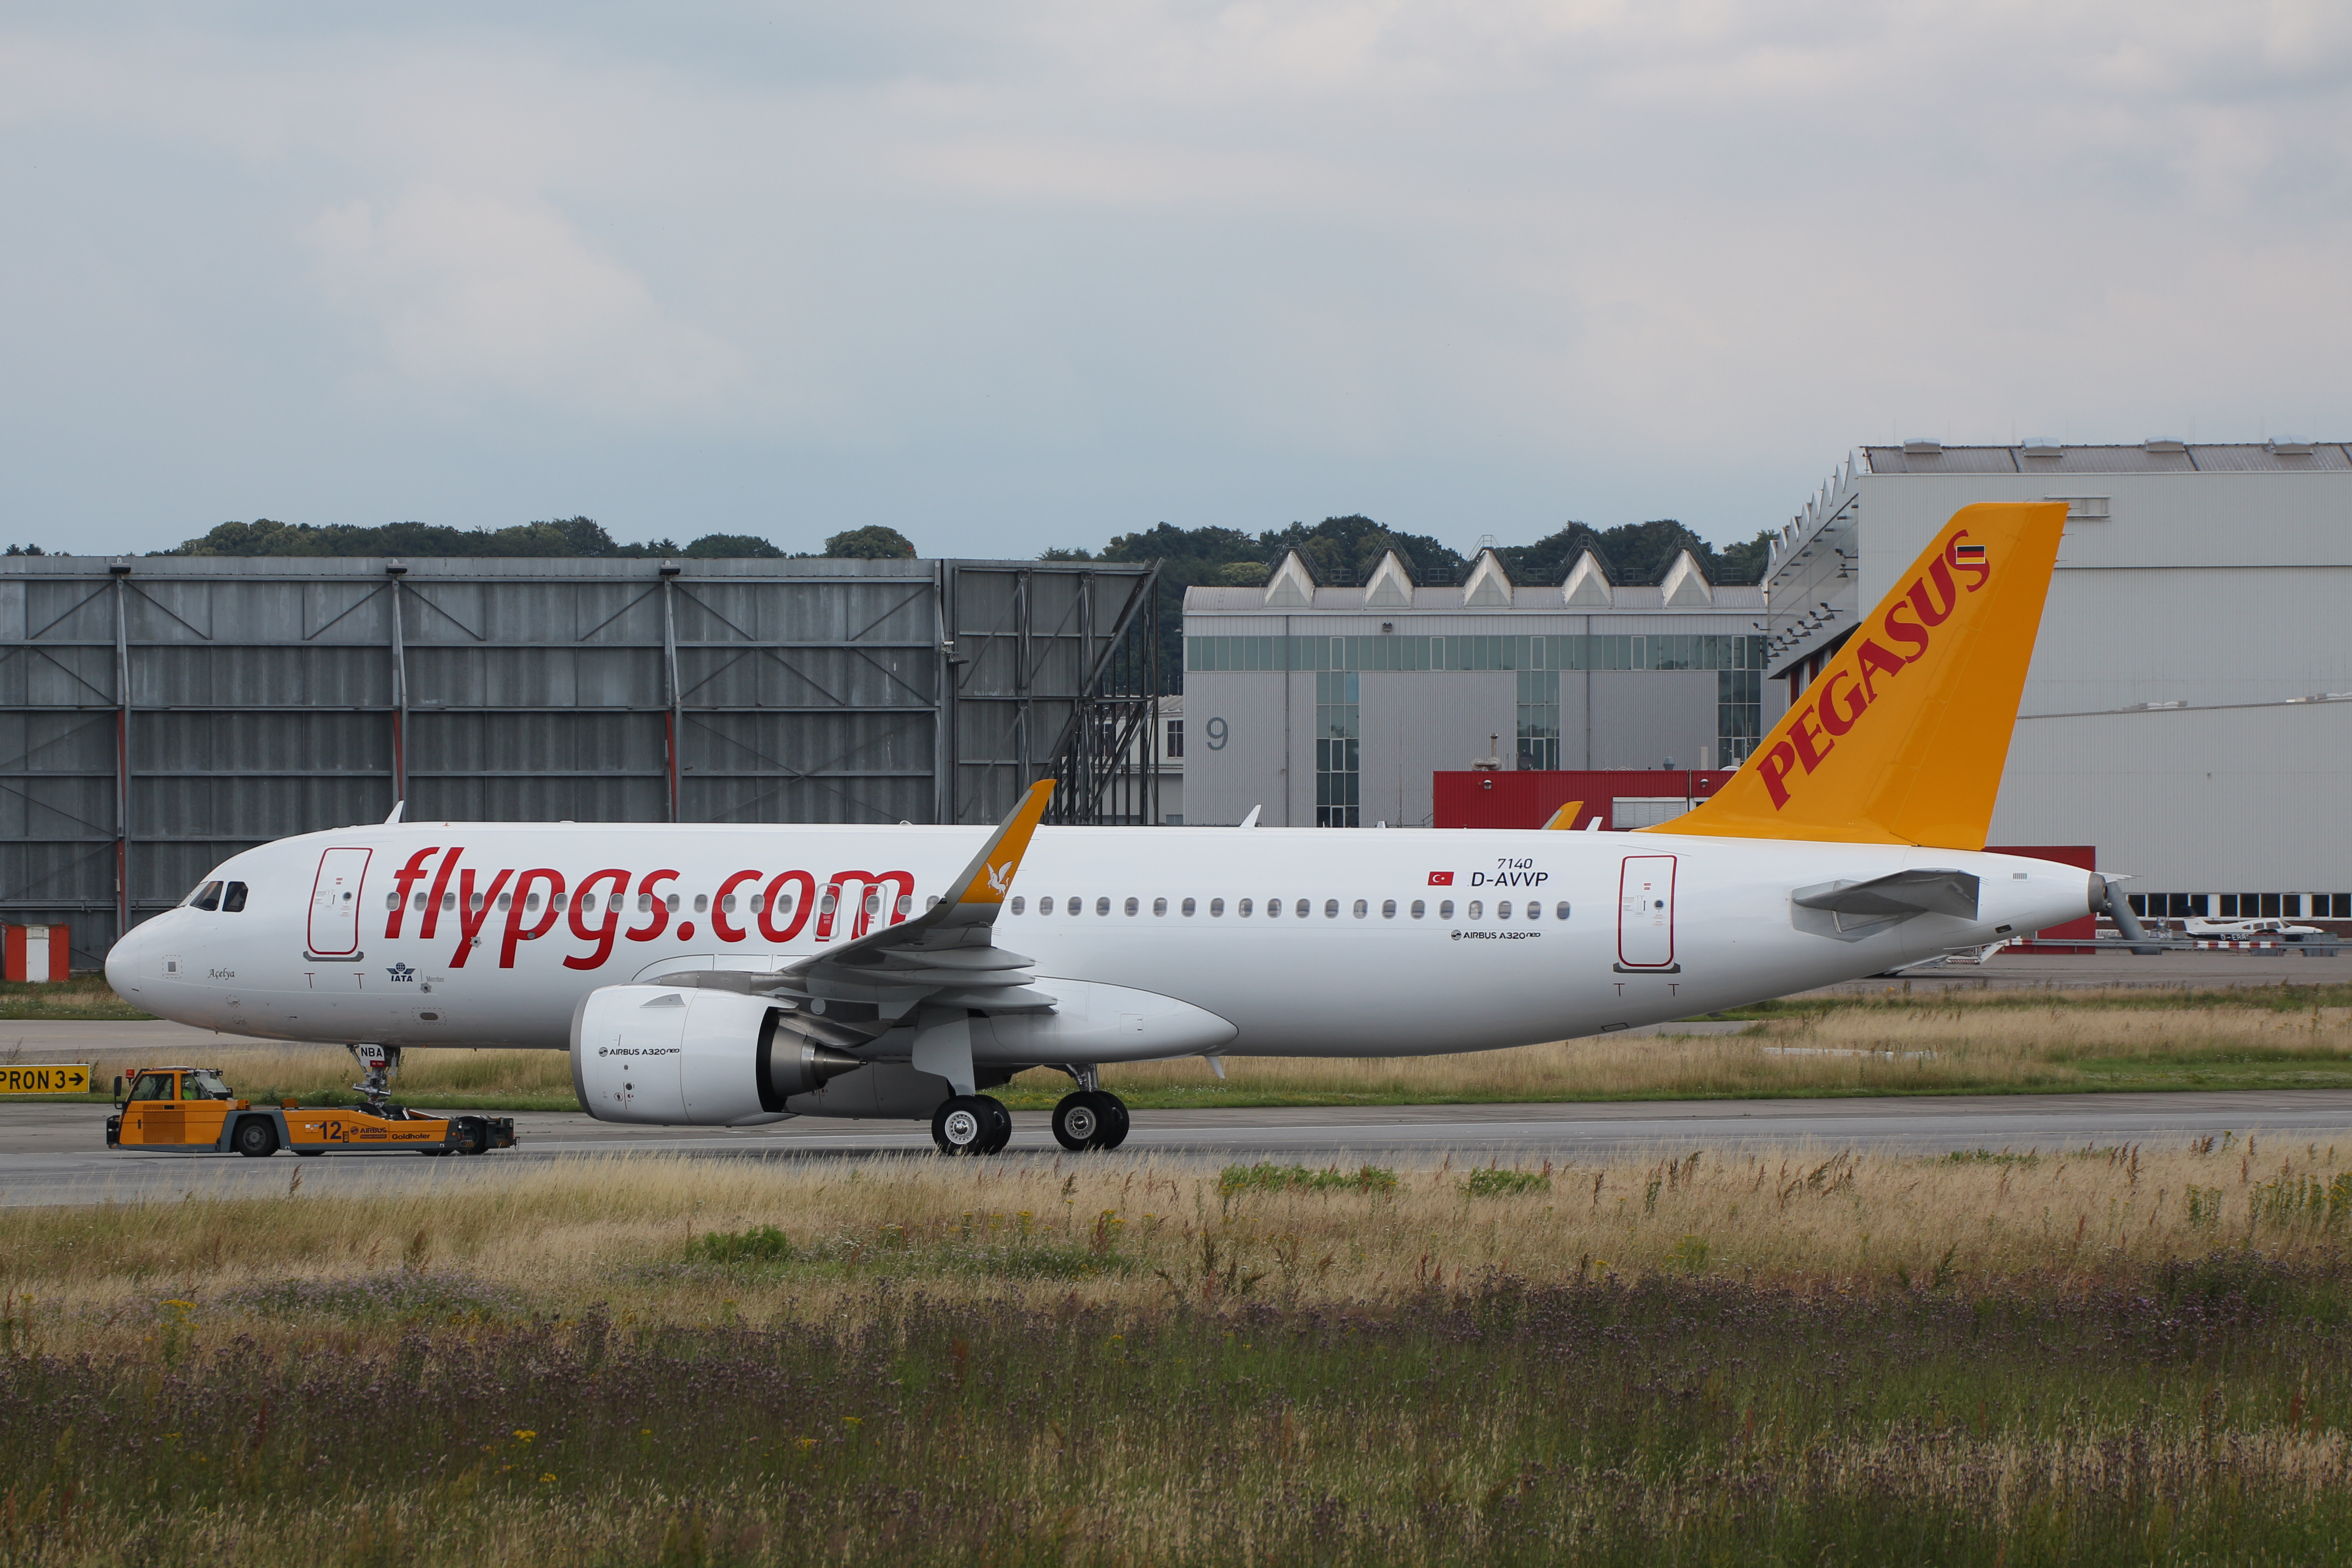 Picture of TC-NBA, the first Pegasus A320neo being pulled on the tug at Hamburg Finkenwerder - Picture from XFW Spotter